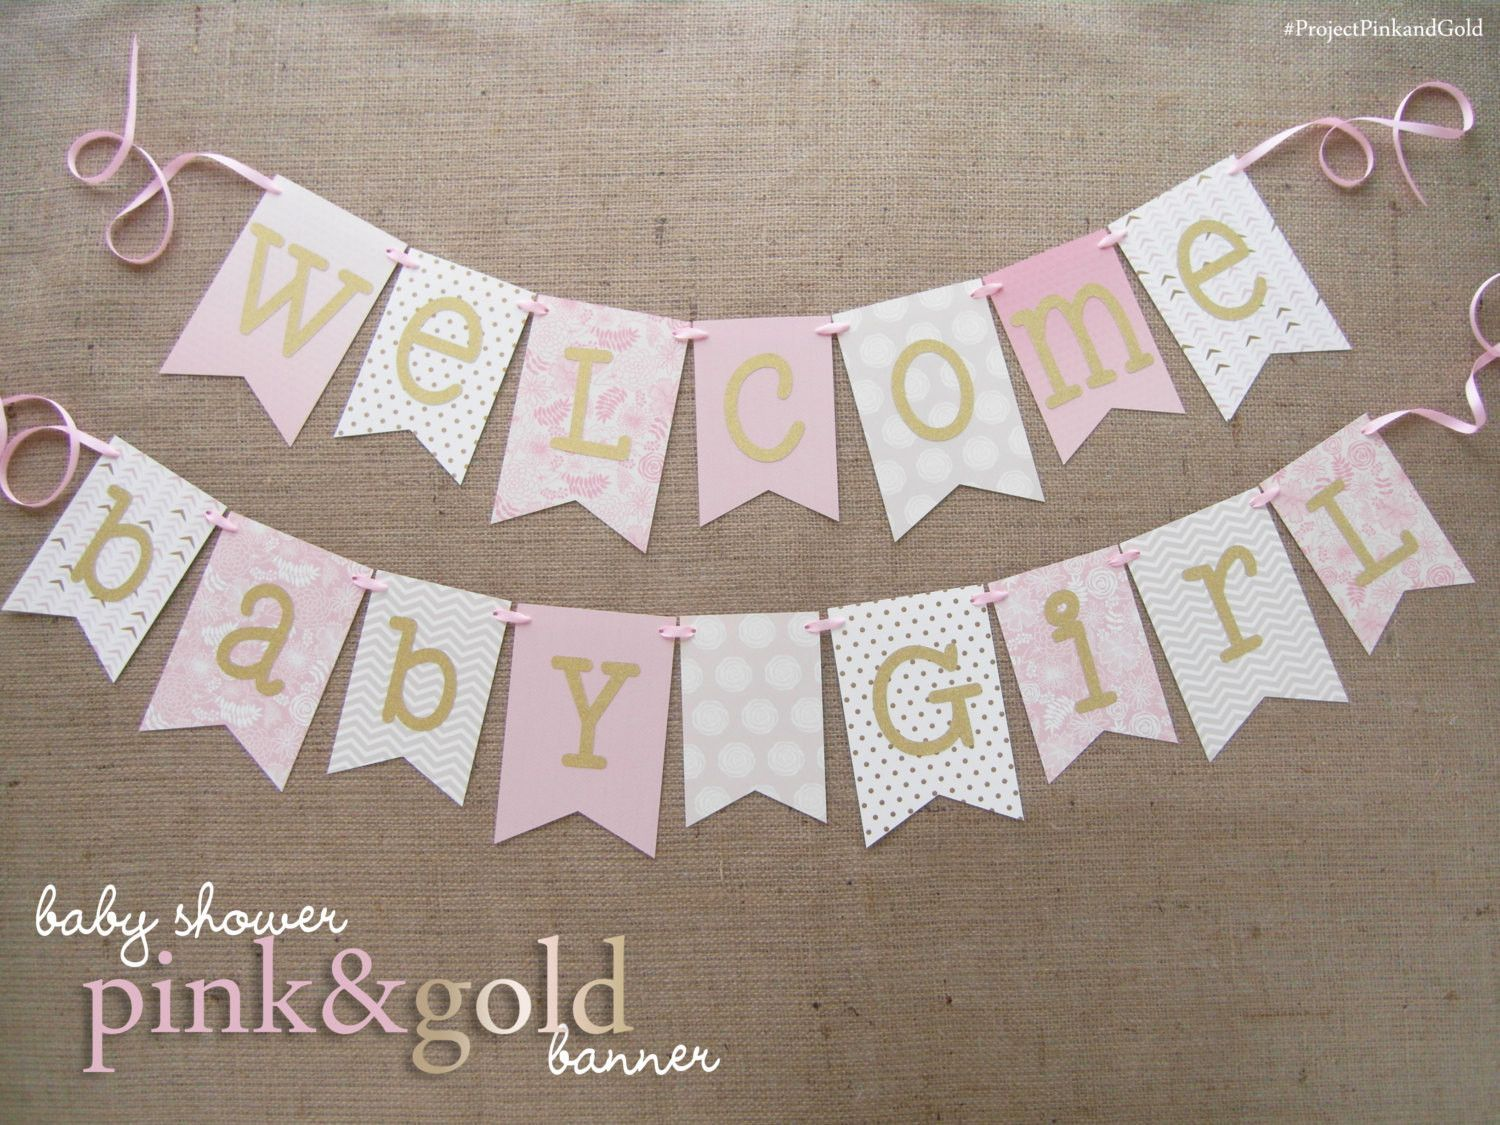 Full Size of Baby Shower:89+ Indulging Baby Shower Banner Picture Inspirations Baby Shower Banner Baby Shower De Baby Shower Kit Baby Shower Keepsakes Baby Shower Venues London Pink And Gold Baby Shower Banner Congratulations From